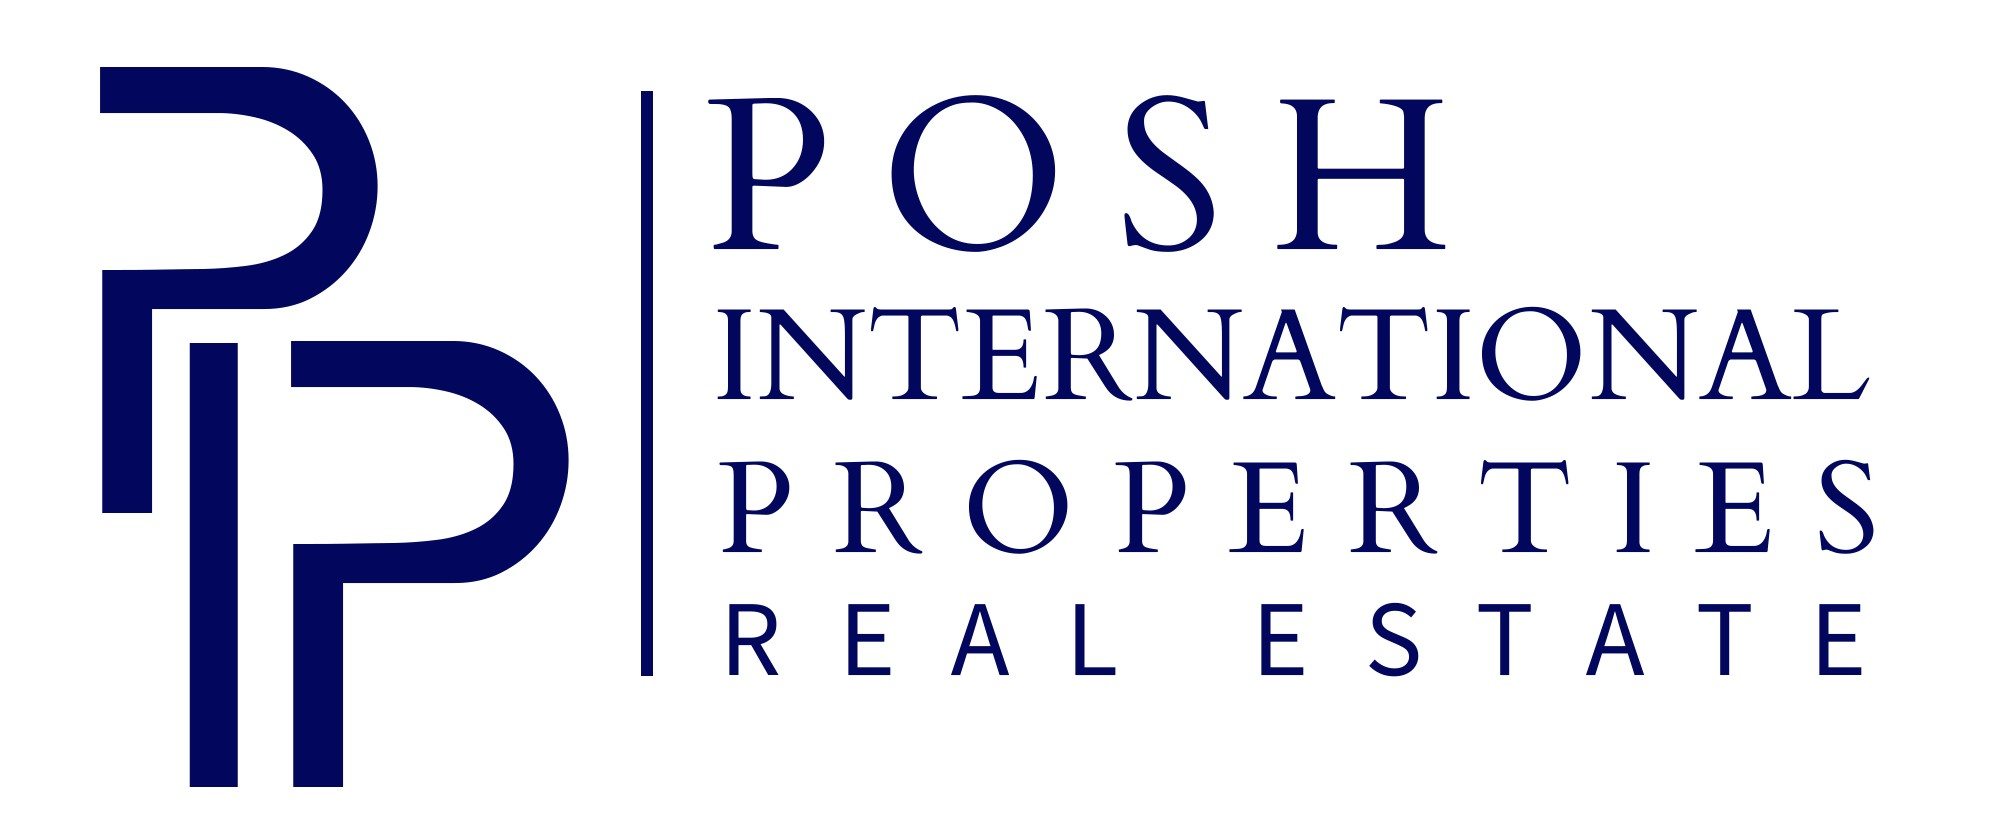 Posh International Properties - Immobilien Florida, Naples, Bonita Springs, Bonita Beach, Marco Island, Estero, Cape Coral, Sanibel, Fort Myers Beach, Fort Myers, Kirsten Prizzi - Deutscher Makler Naples